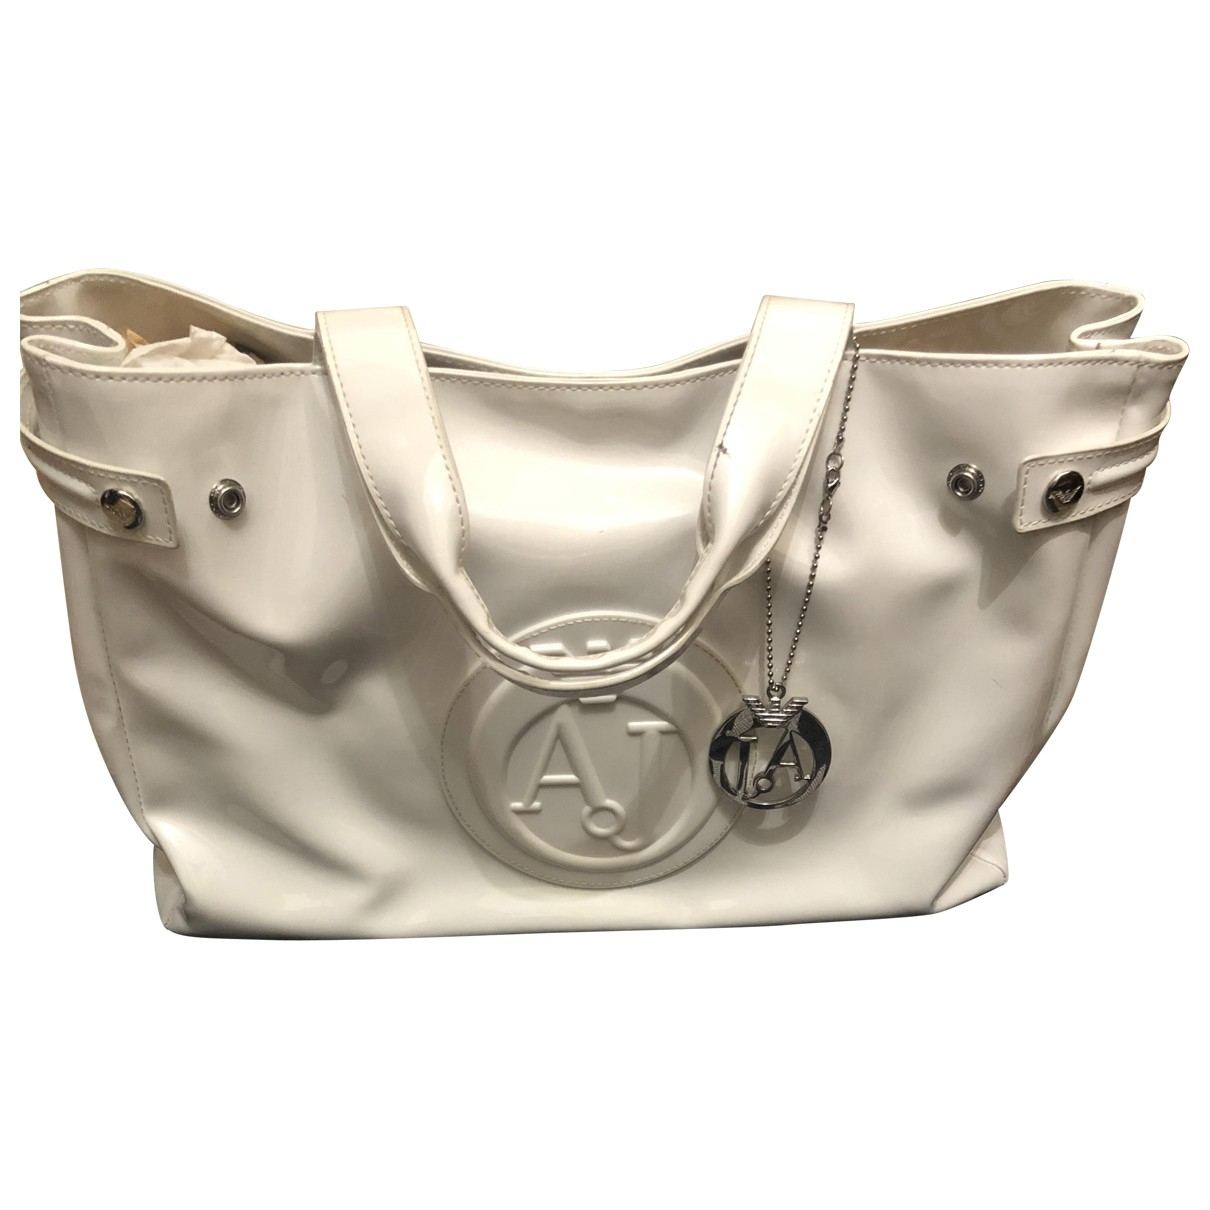 Armani Jeans \N White Patent leather handbag for Women \N